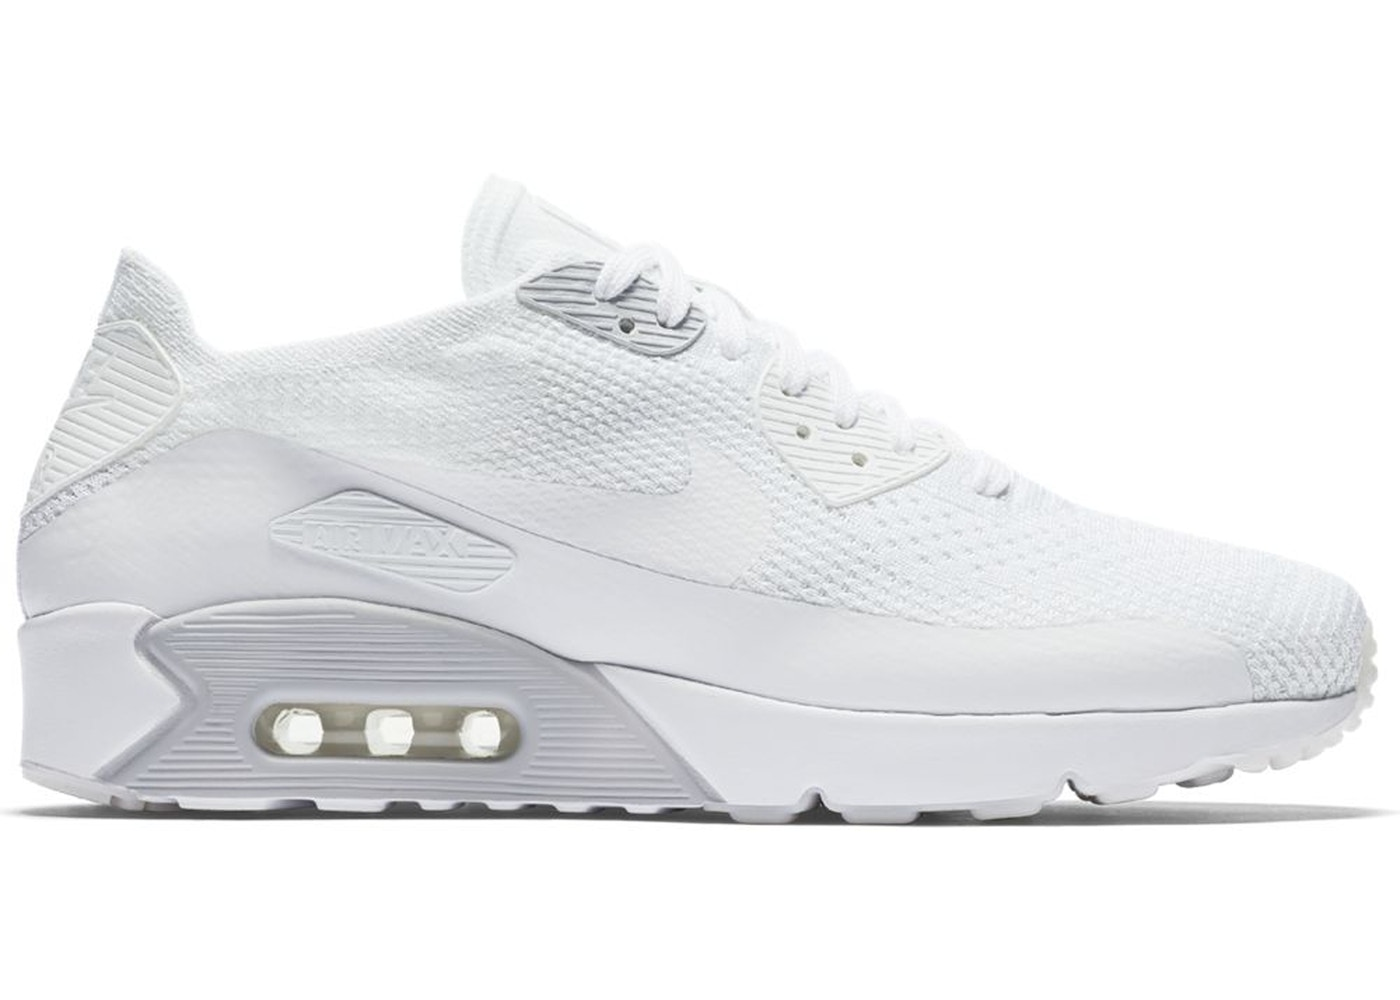 buy online 38f0a e9bb7 Air Max 90 Ultra 2.0 Flyknit White